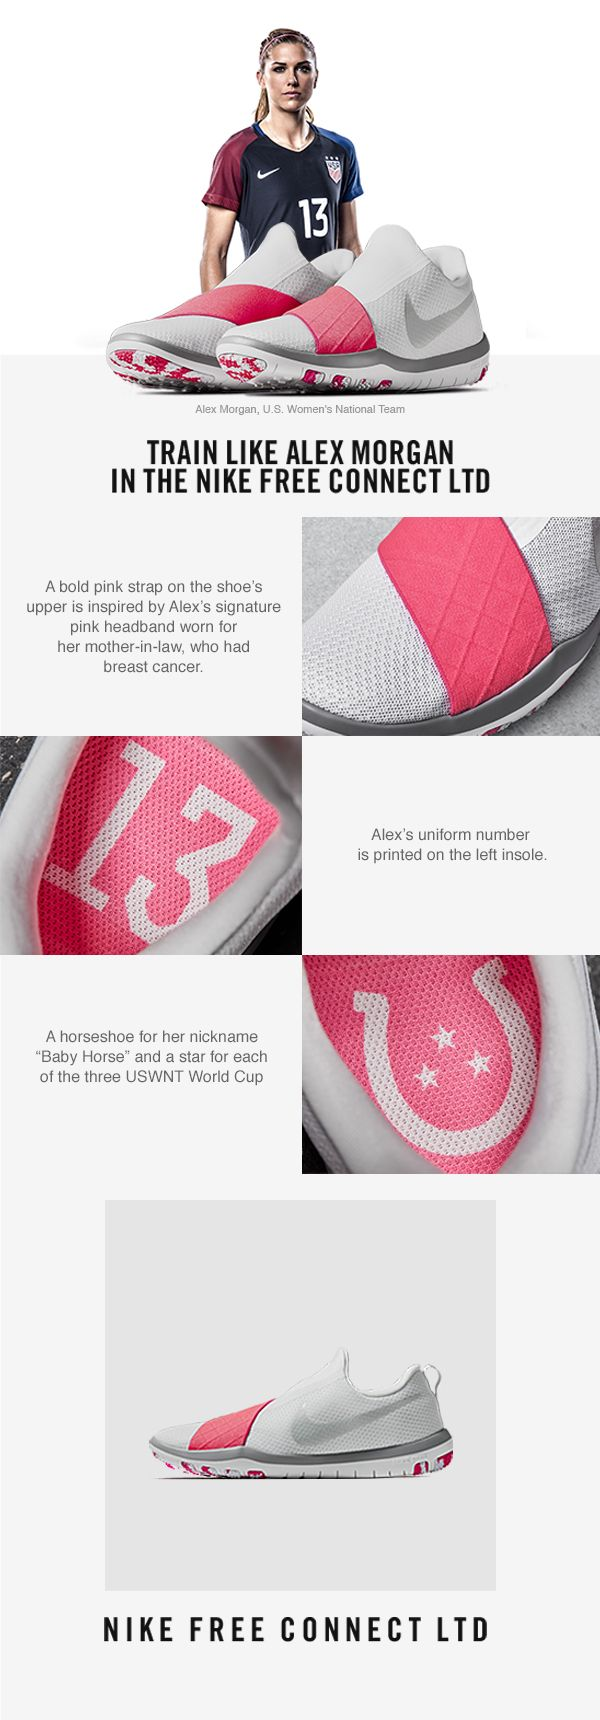 28457bc7a Your new training shoe. The limited edition NikeWomen Free Connect LTD  Alex  Morgan Nike ...